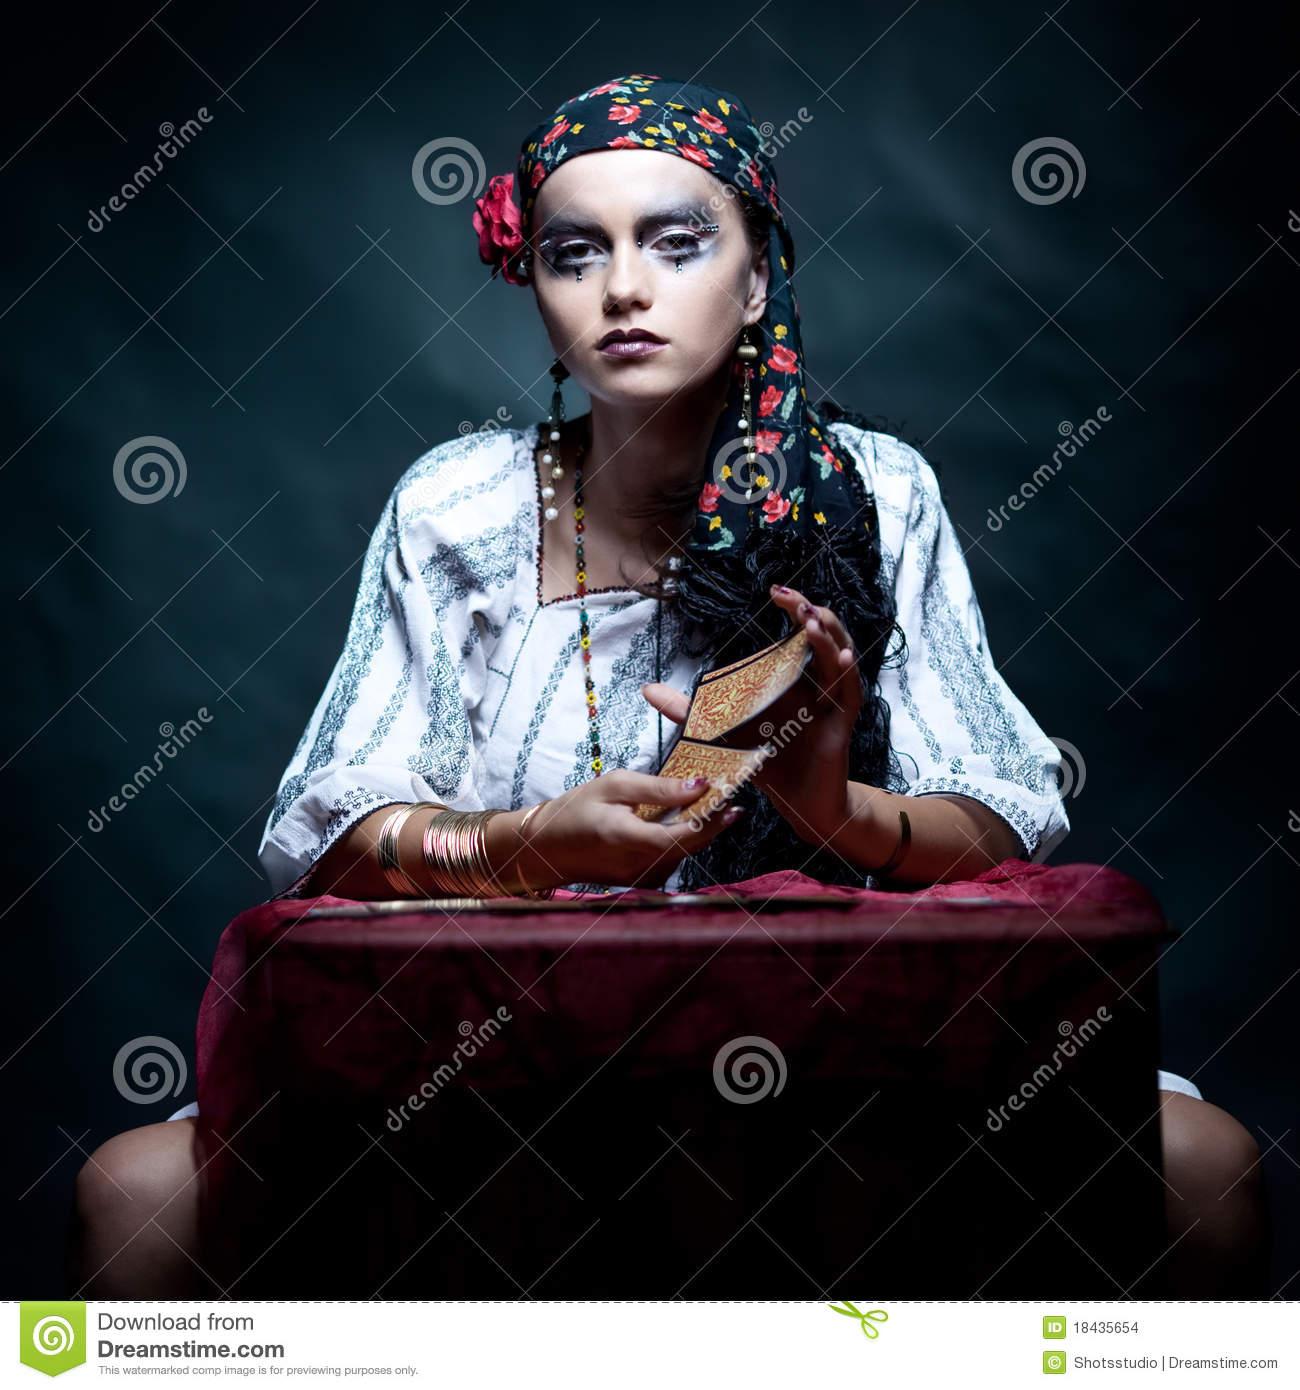 Beautiful Expersion Girl Wallpapers Gypsy Fortune Teller Mixing The Tarot Cards Stock Images